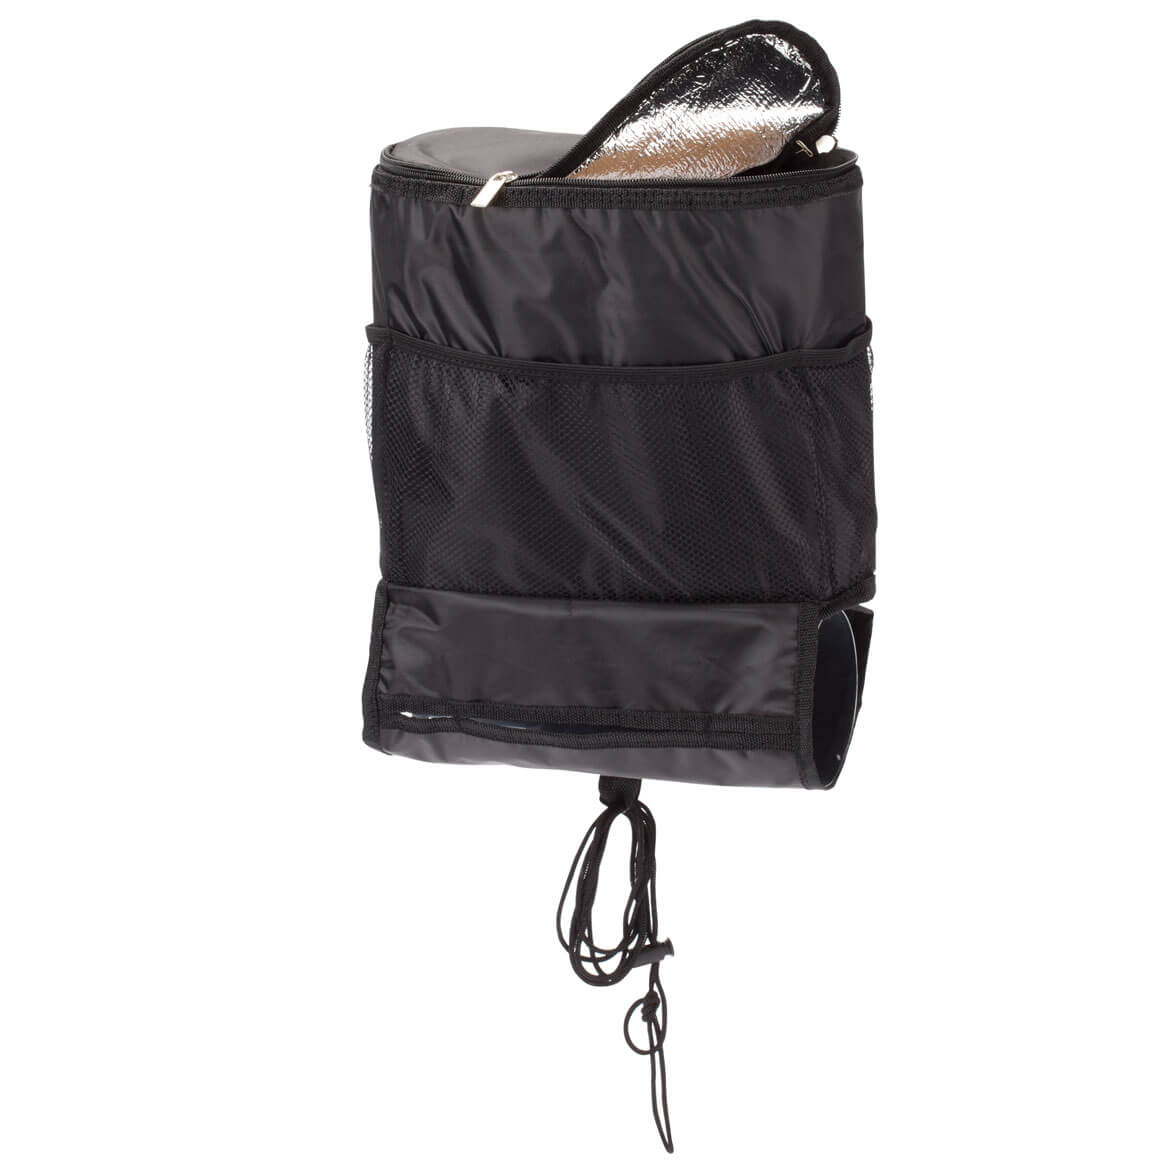 Over-the-Seat Organizer with Cooler